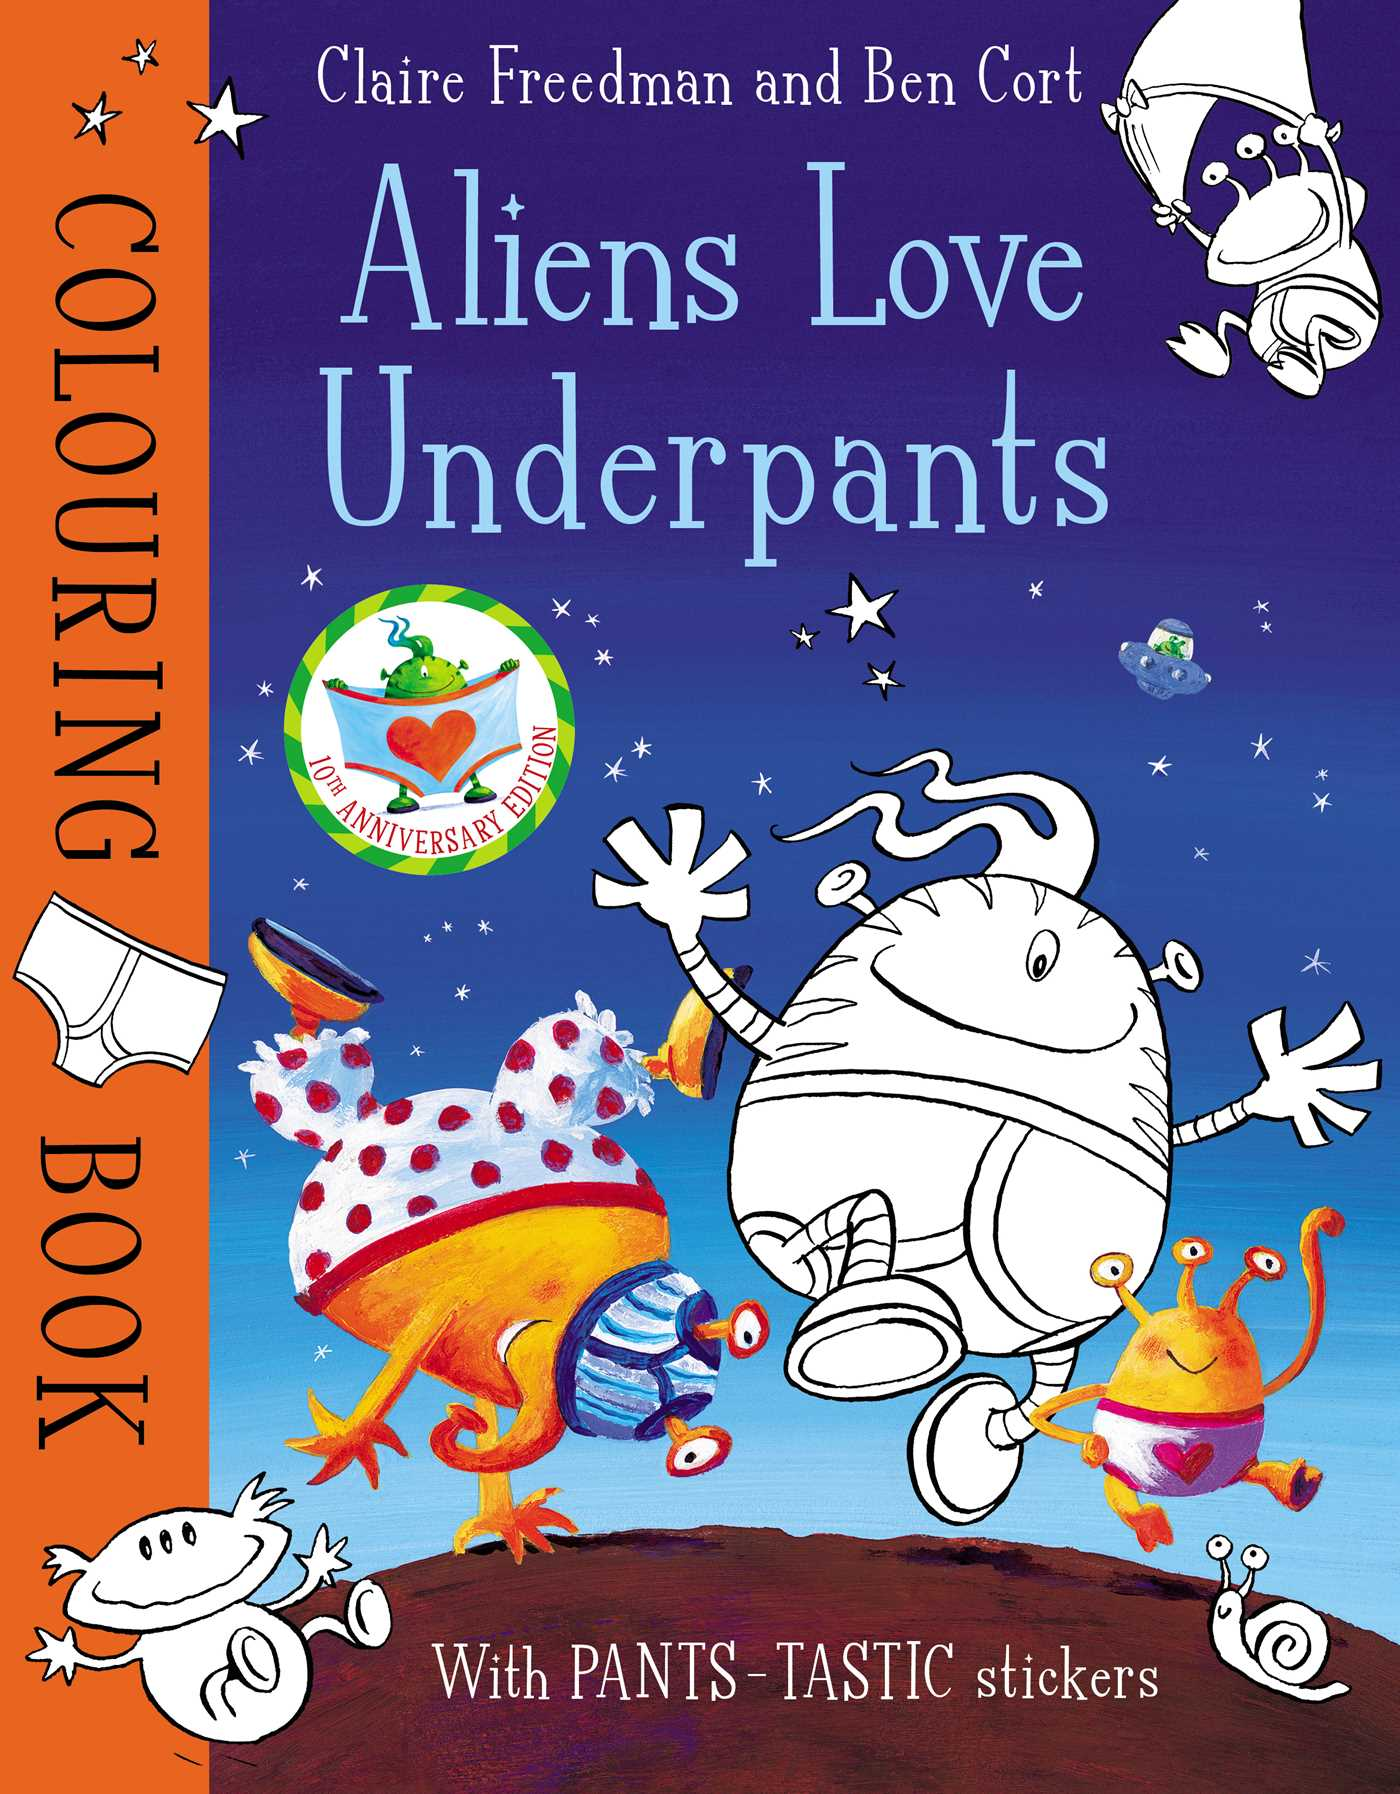 Aliens love underpants colouring book 9781471164293 hr